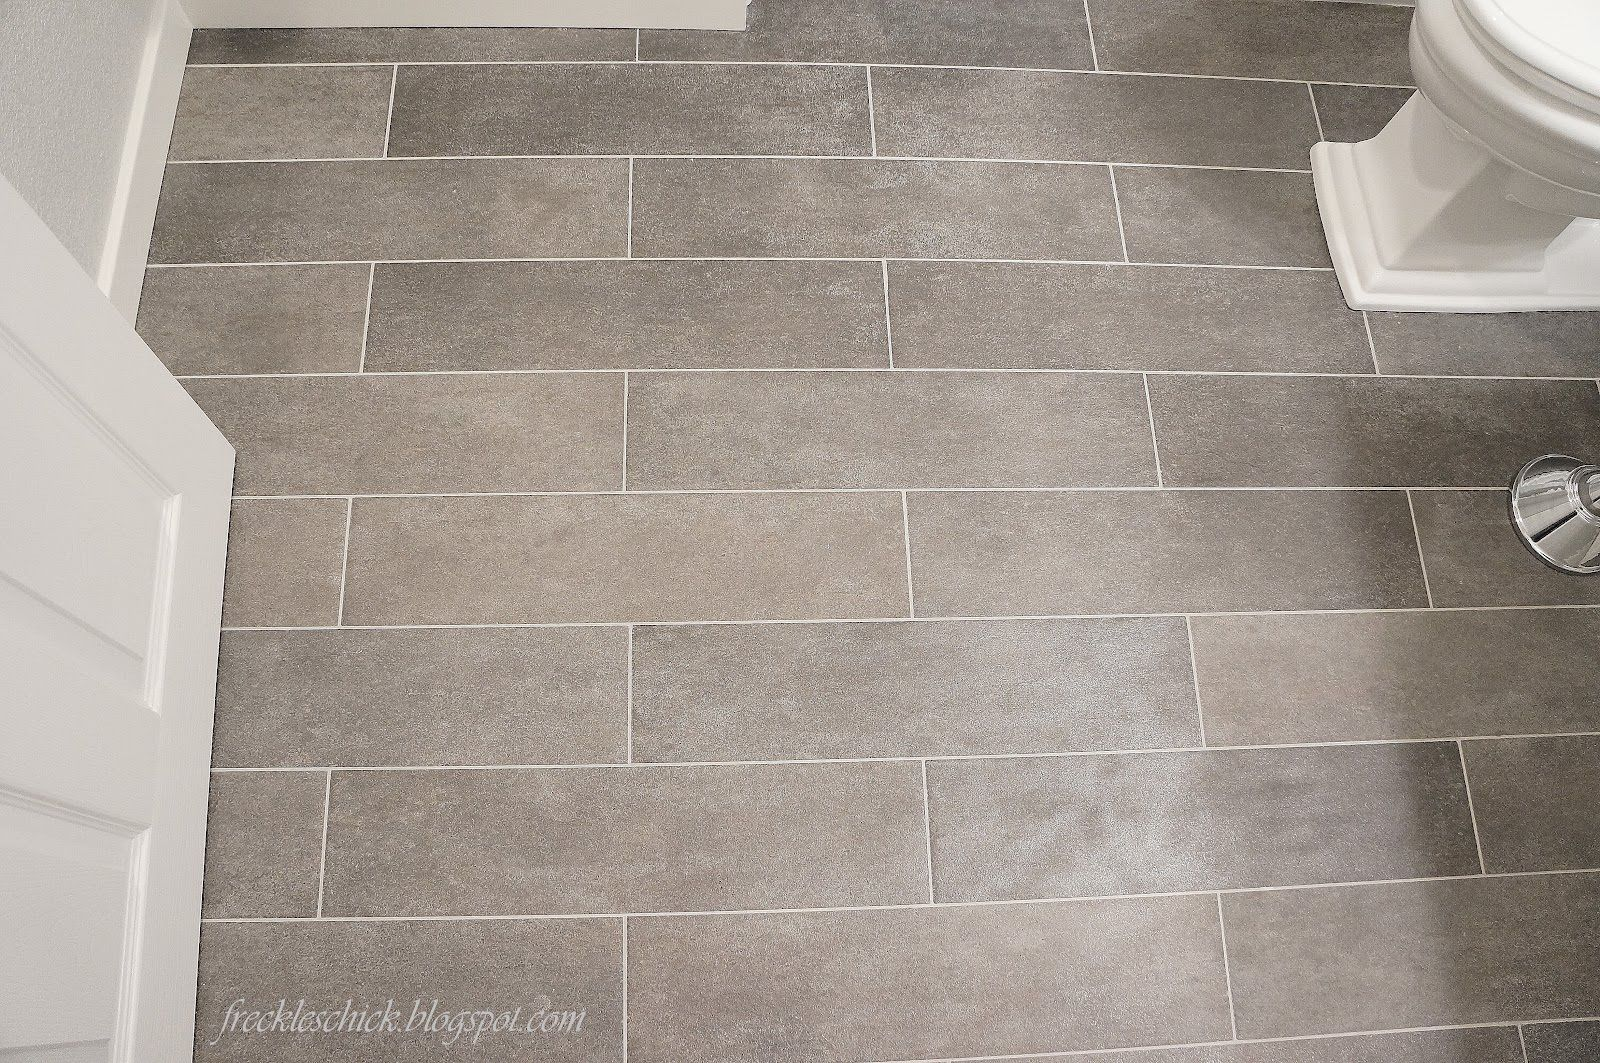 Bathroom Floor Tile Tile Flooring Pinterest Bath House And - Kitchen and bathroom flooring options